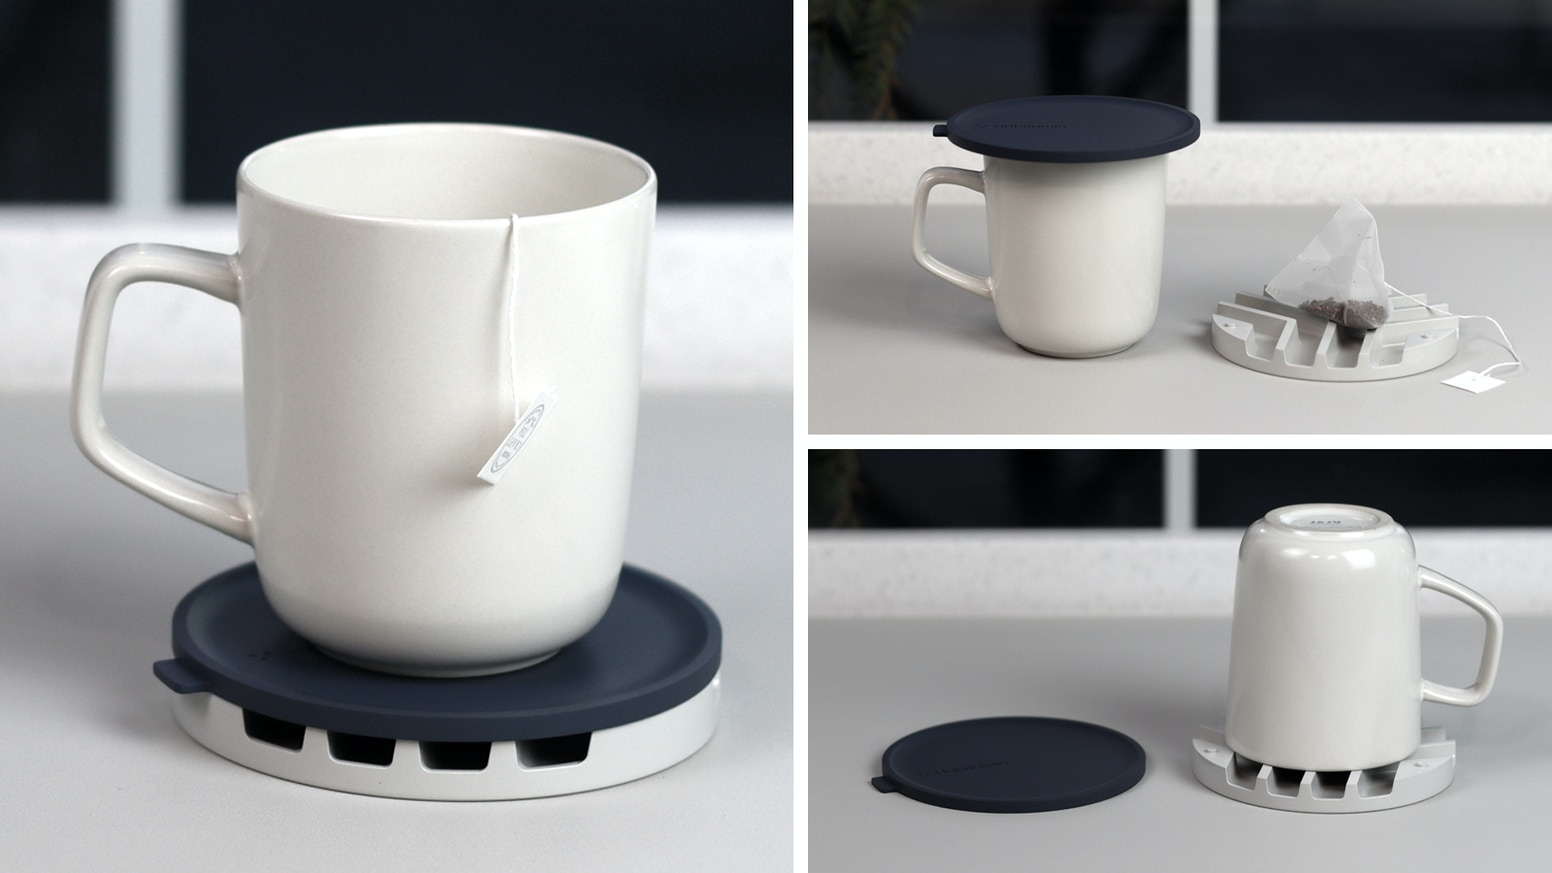 RELAX & ENJOY YOUR TEA TIME WITH MULTI-PURPOSE DRINK CUP LID & COASTER